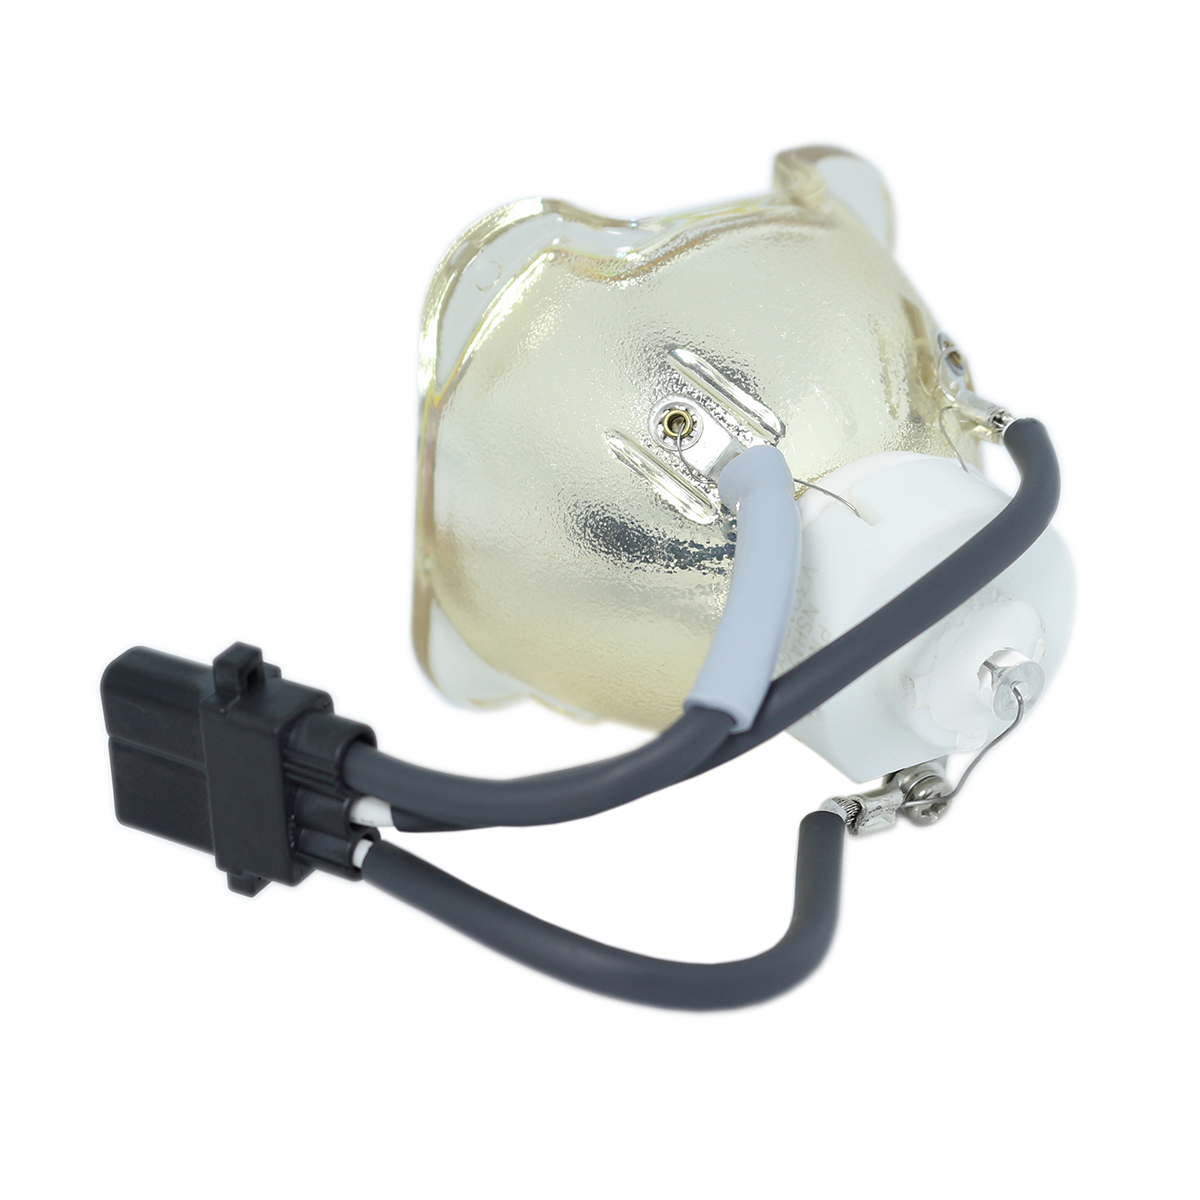 Compatible TLPLW28G TLP-LW28G for TOSHIBA TDP-T355 TDP-T355J TDP-TW355 TDP-TW355J TDP-TW355U Projector Bulb Lamp Without Housing compatible bare bulb tlplw6 tlp lw6 for toshiba tdp t250 tdp tw300 tw300 projector lamp bulb without housing free shipping